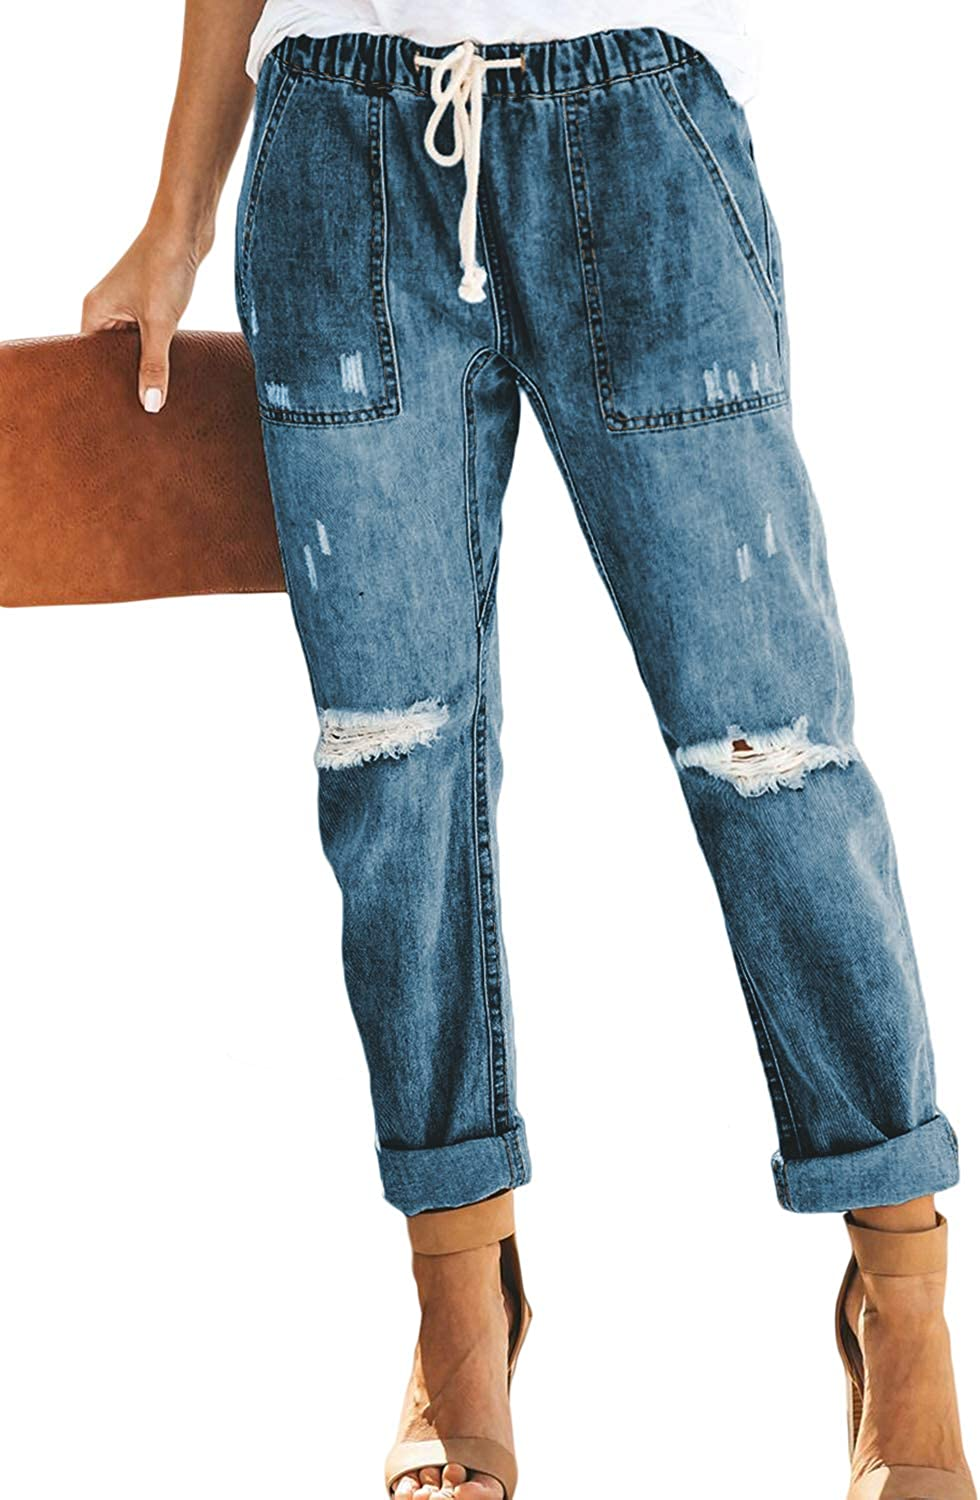 Women S Casual Vintage Wash Loose Fit Ripped Elastic Cuff Junior Jogger Jeans Pants At Amazon Women S Jeans Store Do you know where has top quality loose fit jeans women at lowest prices and best services? women s casual vintage wash loose fit ripped elastic cuff junior jogger jeans pants